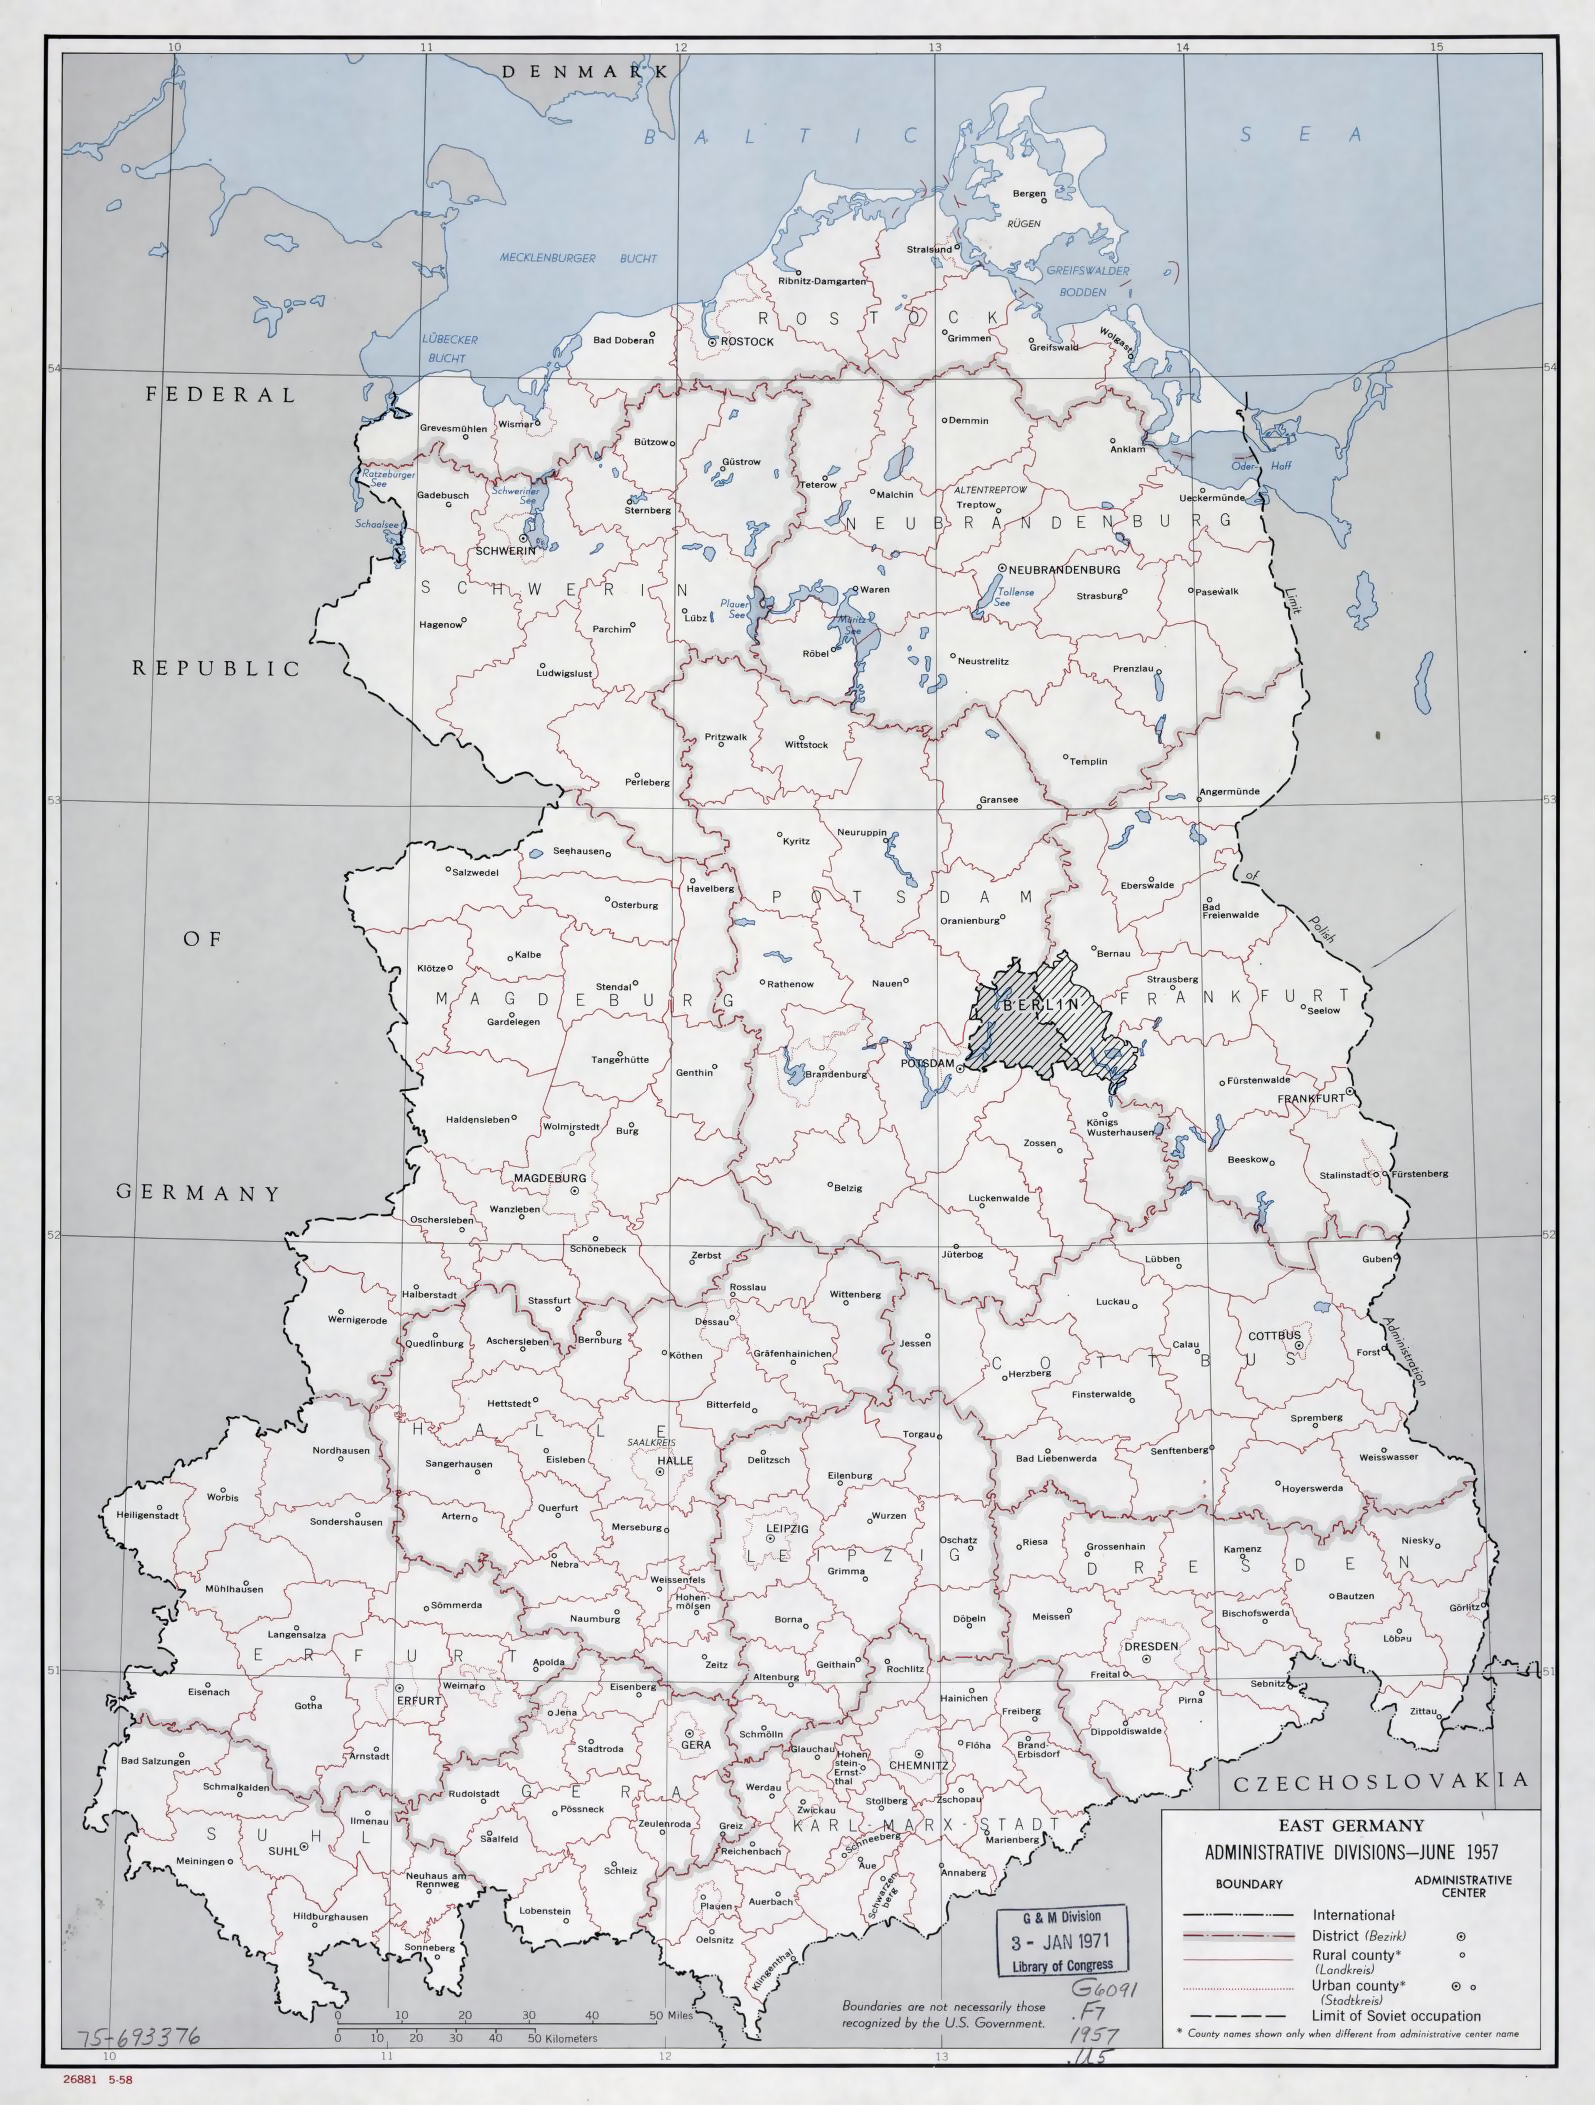 large administrative divisions map of east germany 1958